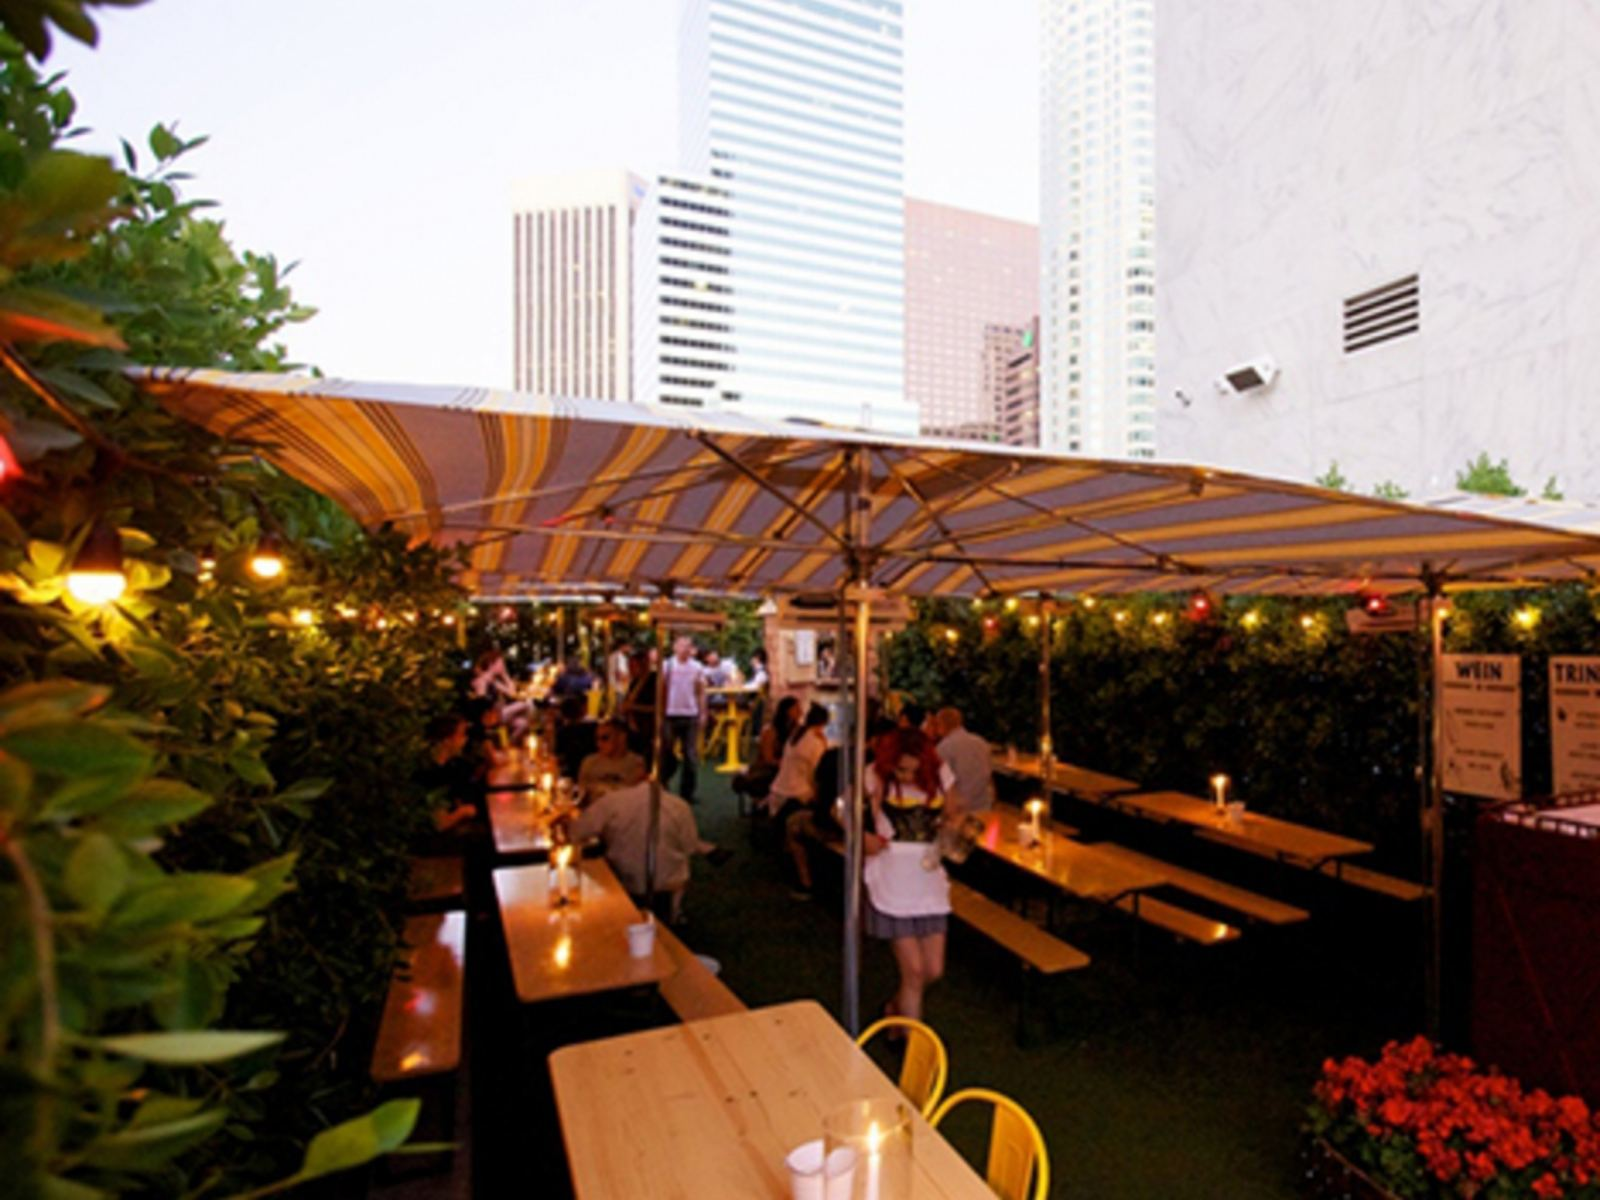 The Biergarten at The Standard Downtown LA Overview